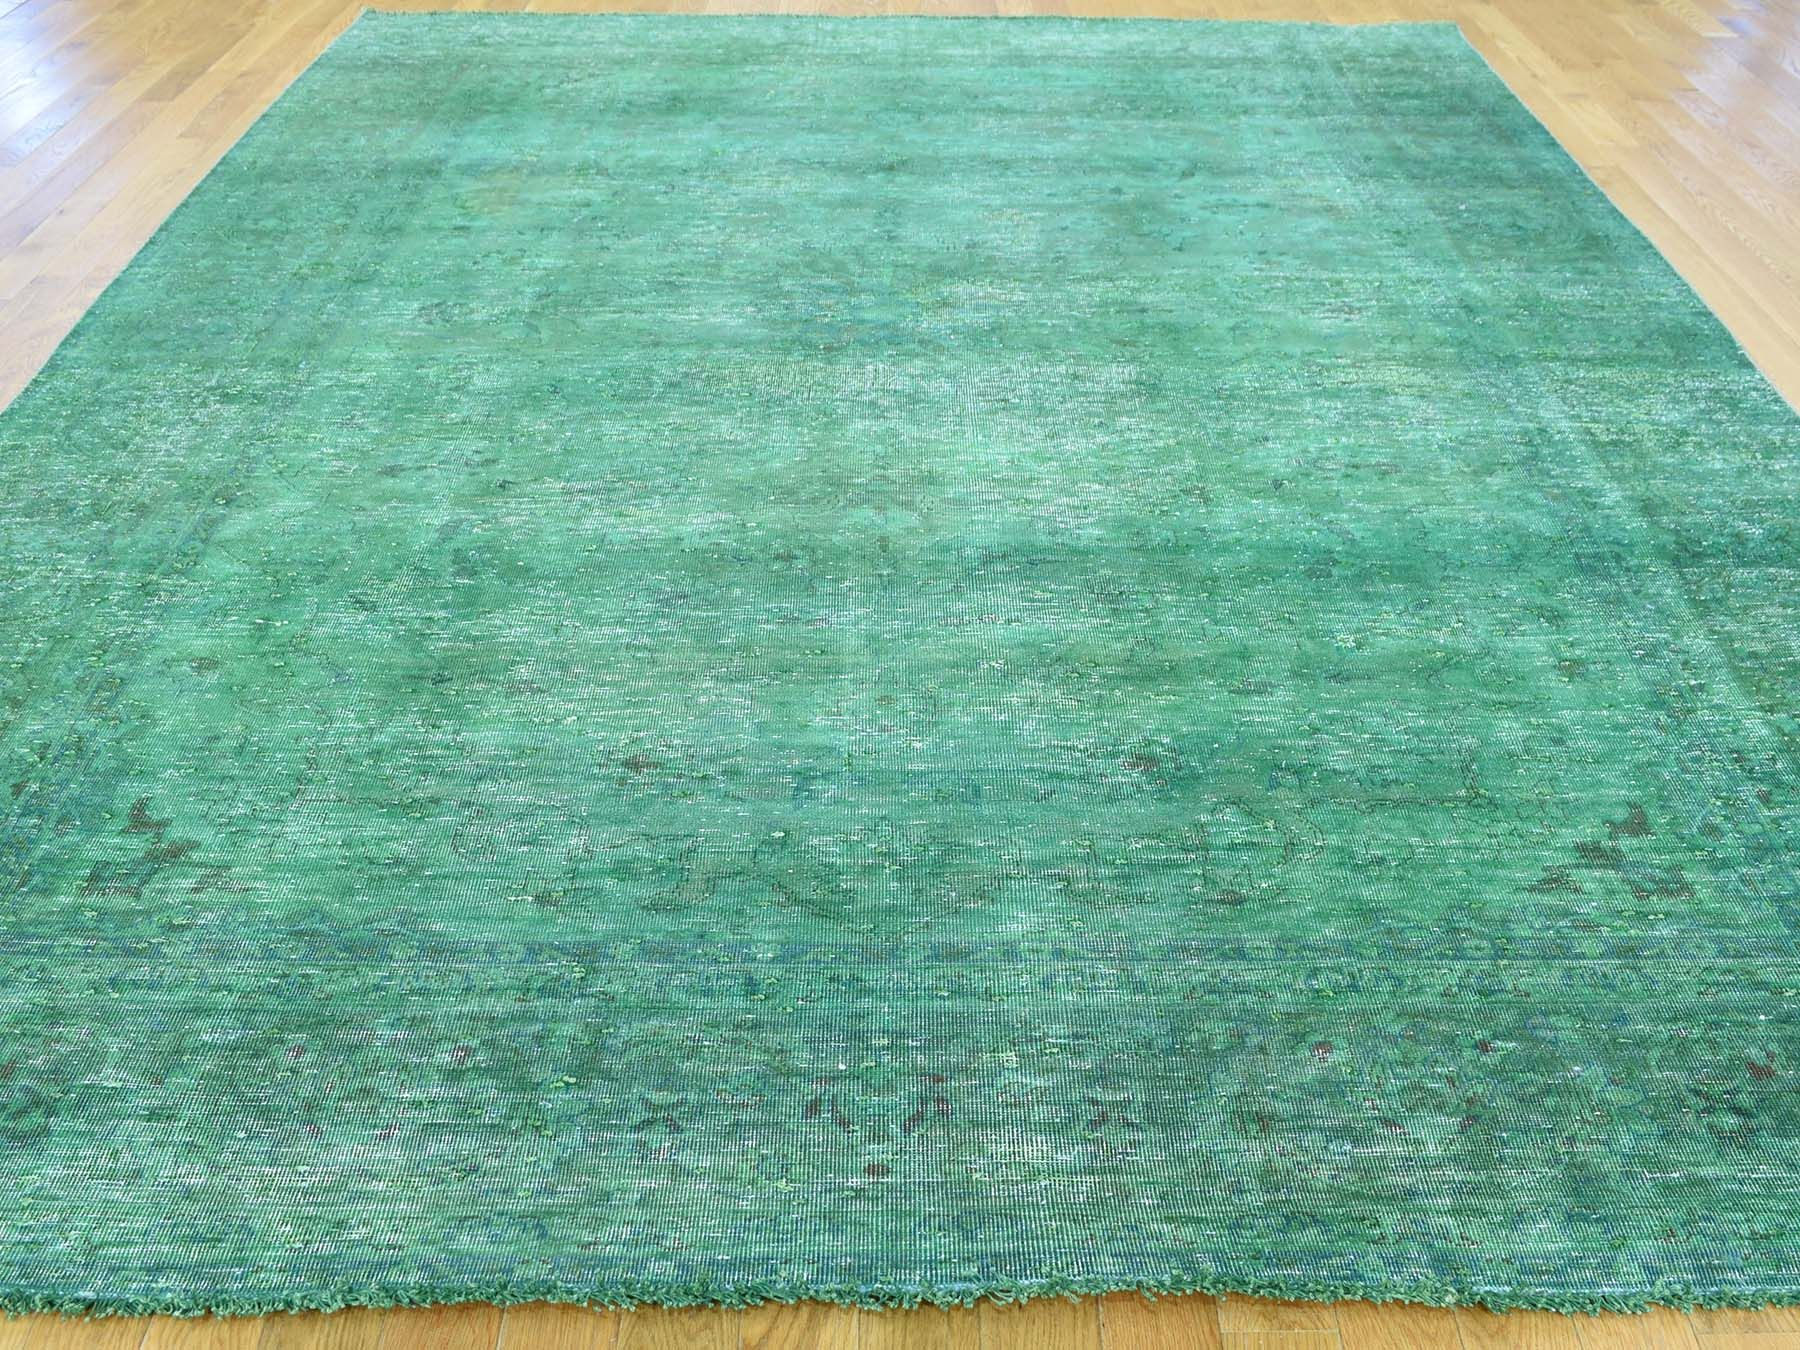 Green Rugs For Sale.8 X10 9 Hand Knotted Pure Wool Overdyed Tabriz Distressed